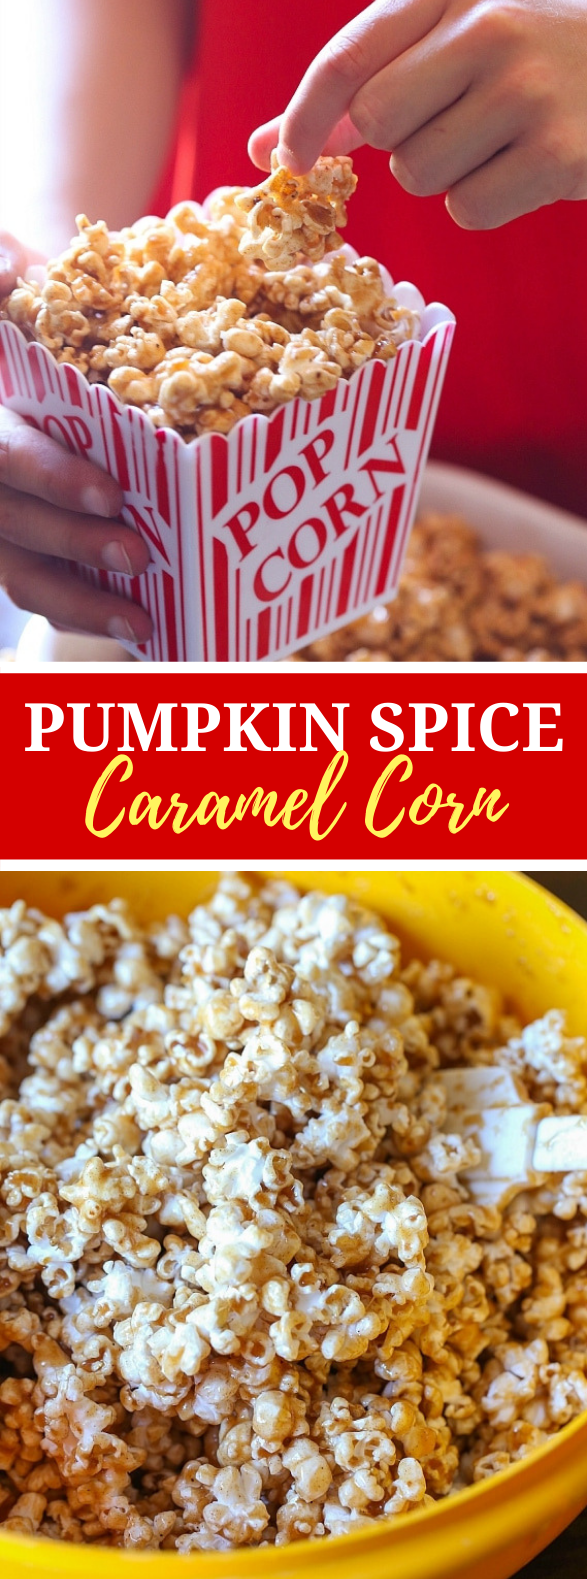 Pumpkin Spice Caramel Corn #dinner #snacks